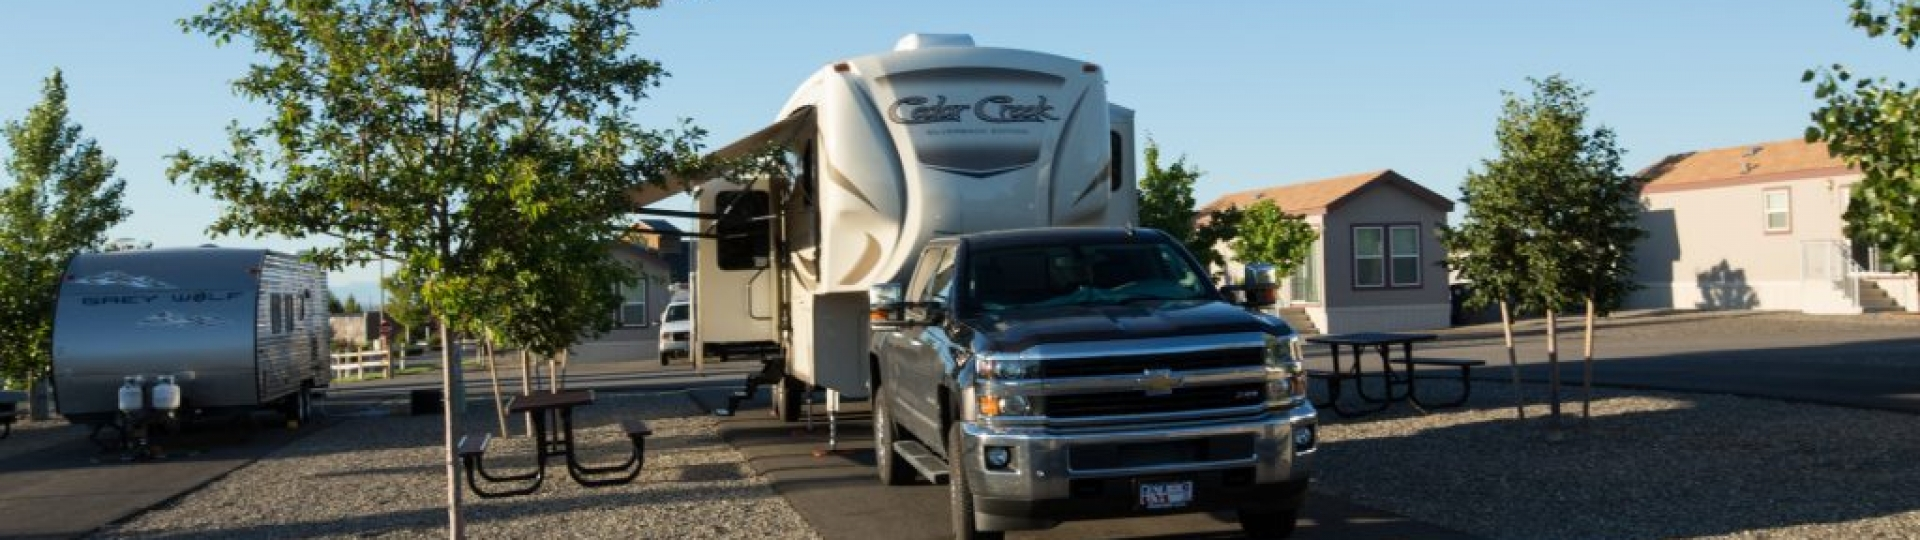 Fifth Wheel Site